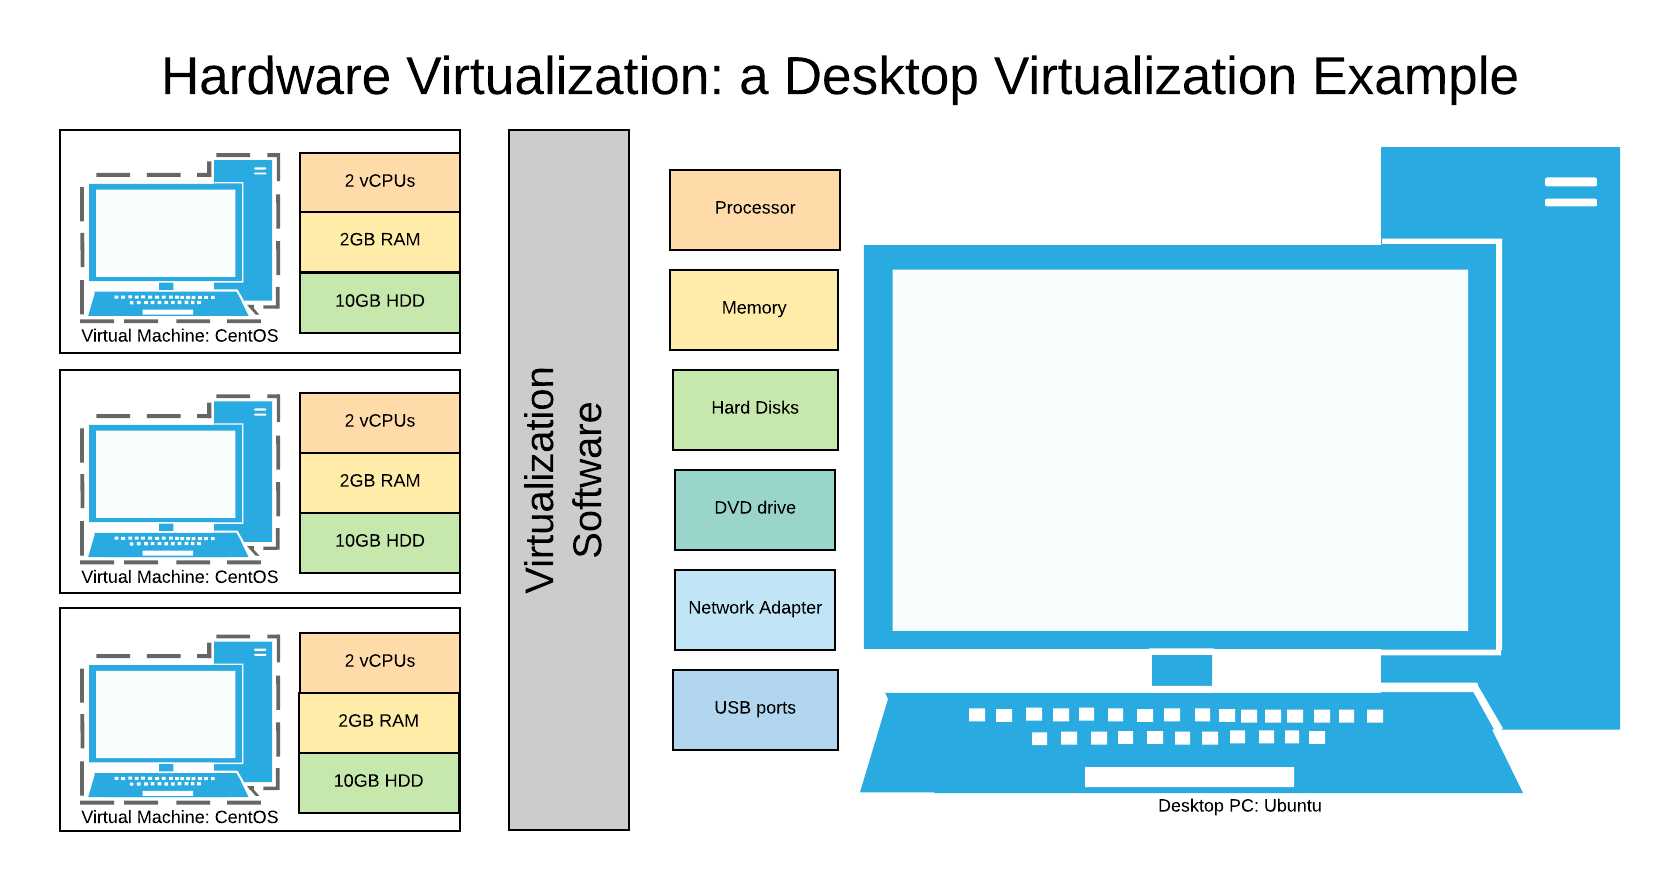 Hardware Virtualization - Desktop Virtualization